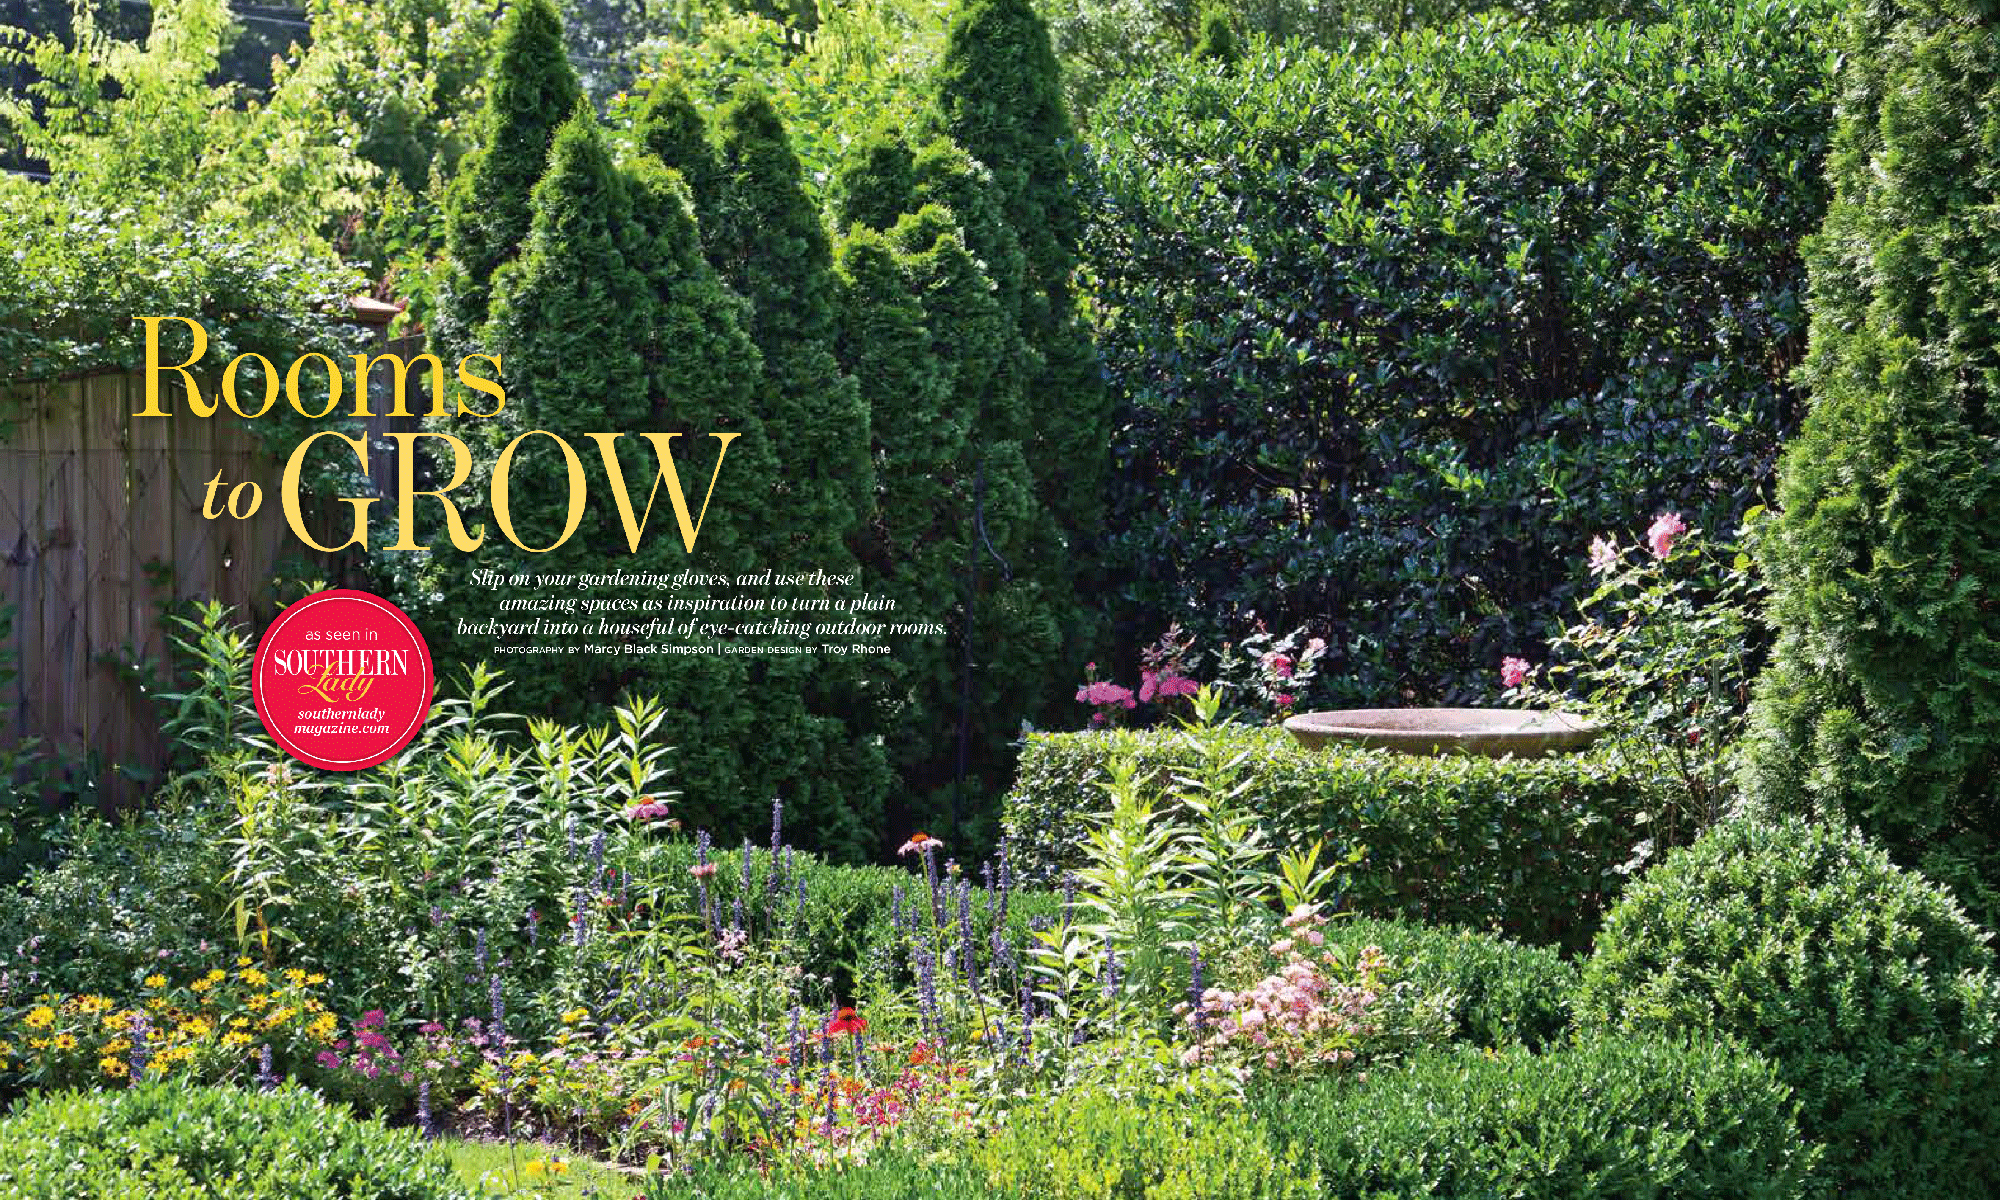 Rooms to grow southern lady garden design magazine for Garten design magazin